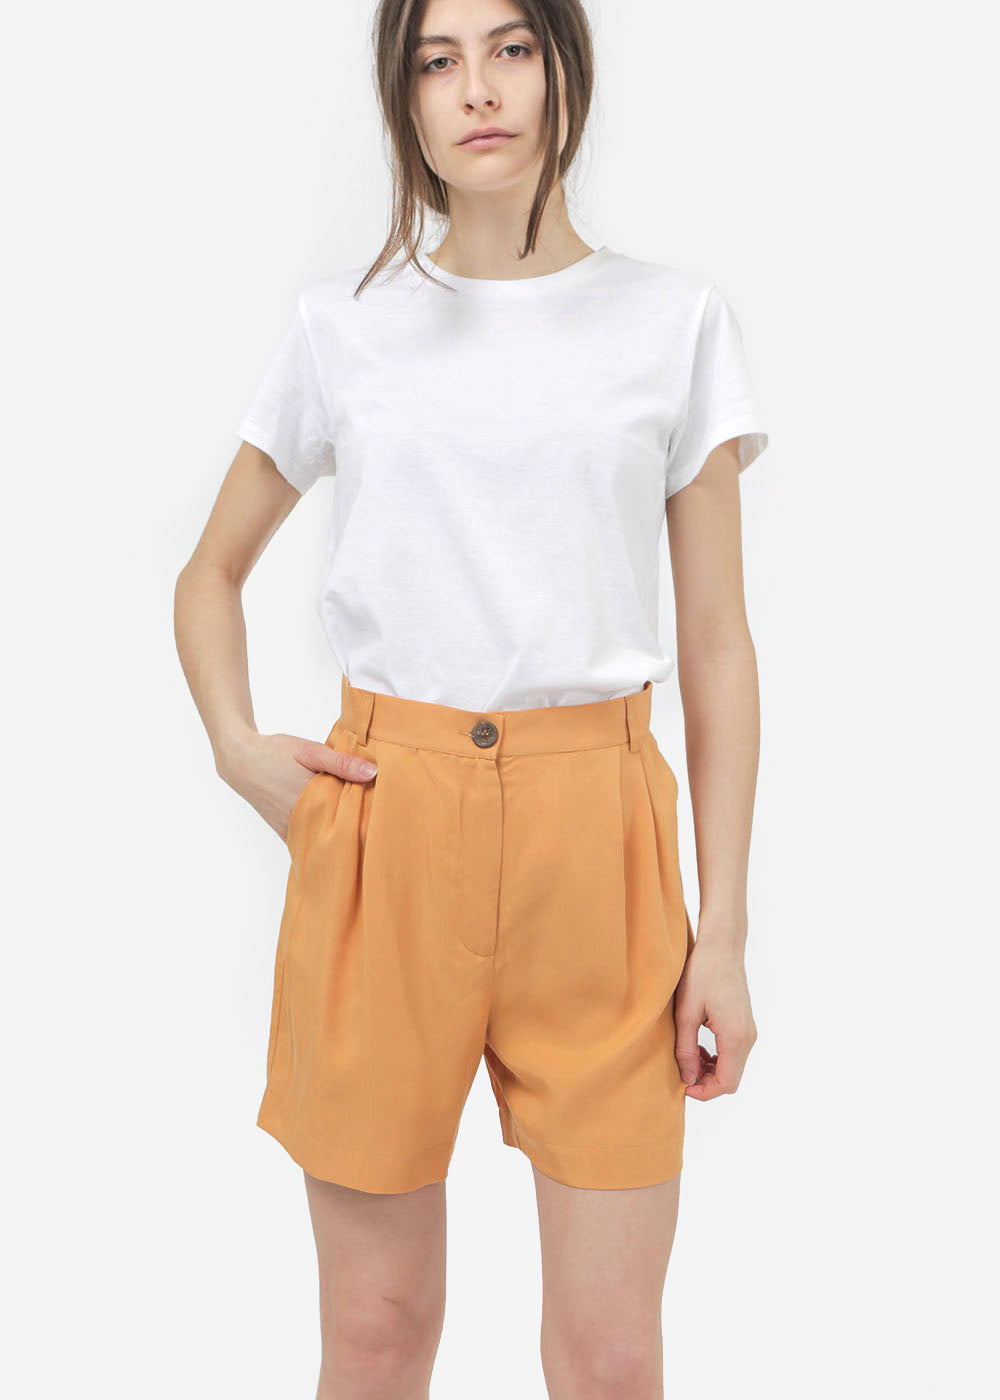 Diarte Moma Shorts — Shop sustainable fashion and slow fashion at New Classics Studios